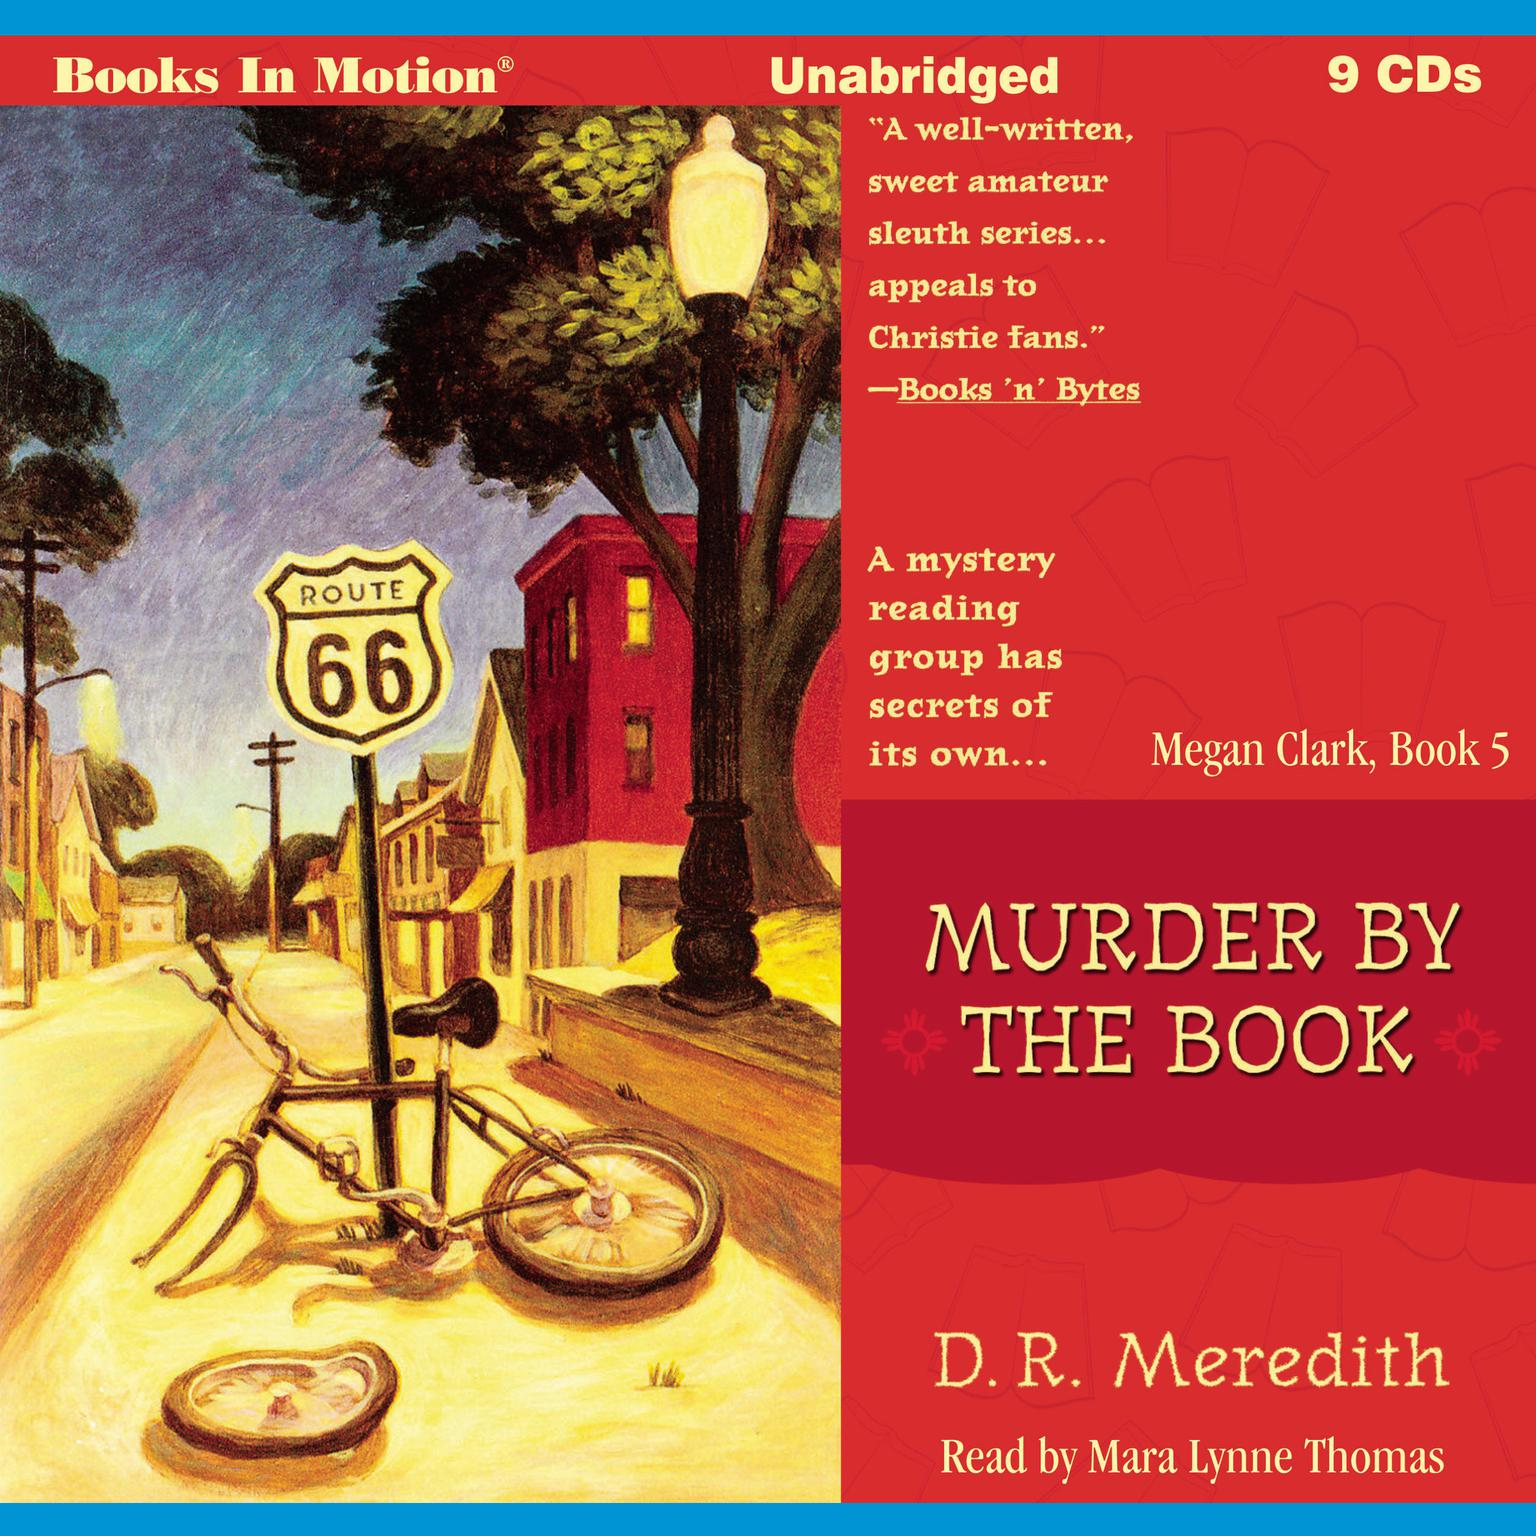 Murder By The Book Audiobook, by D.R. Meredith